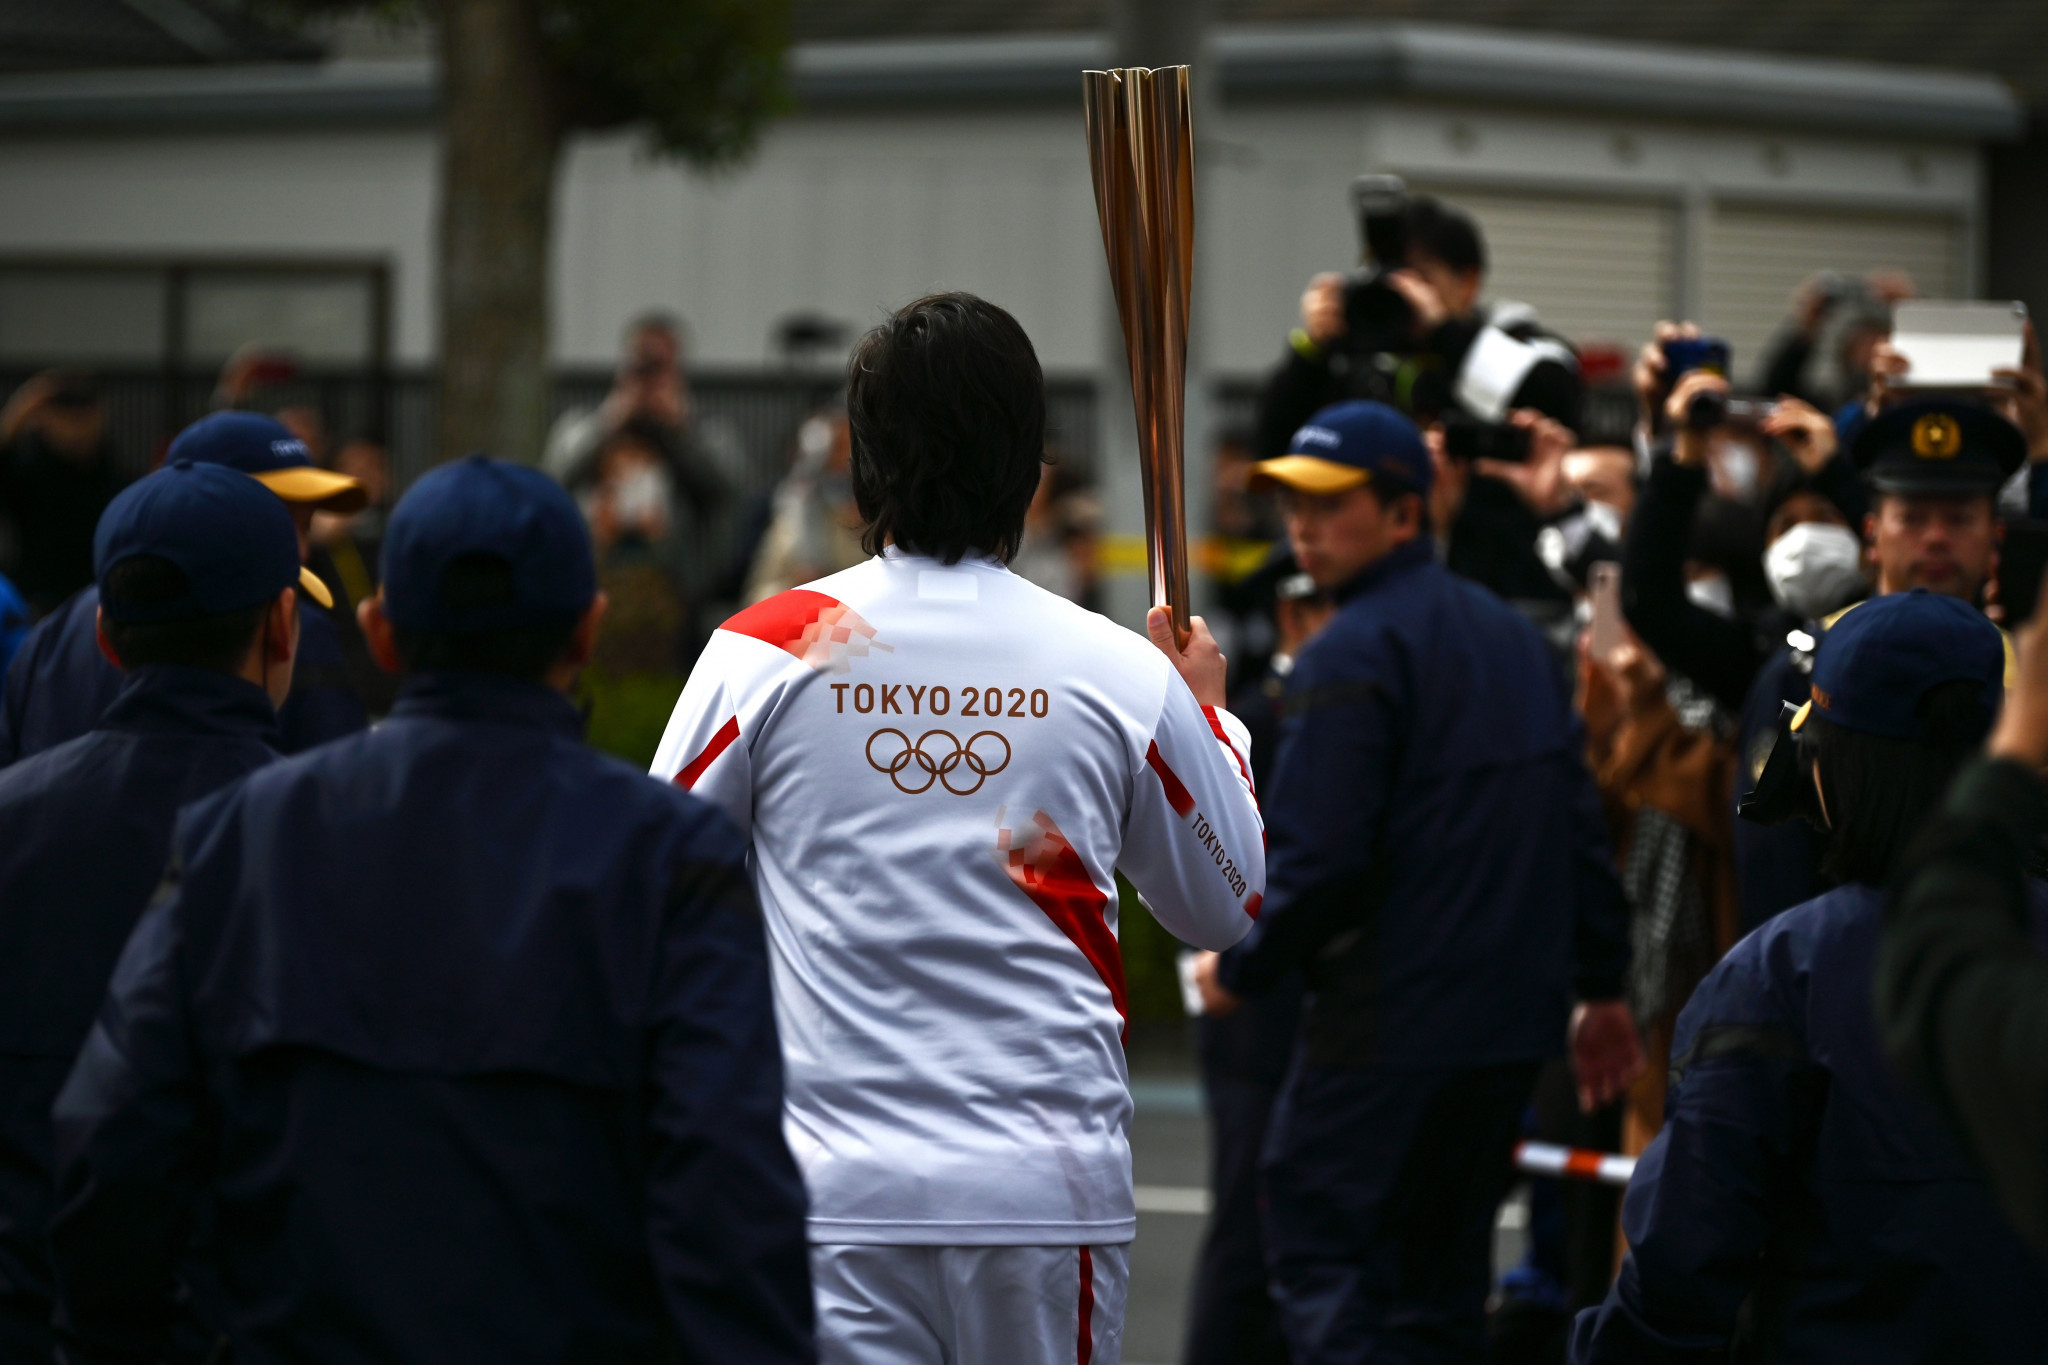 """Tokyo Governor Yuriko Koike said """"thorough infection measures"""" would be in place for the Olympic Torch Relay ©Getty Images"""